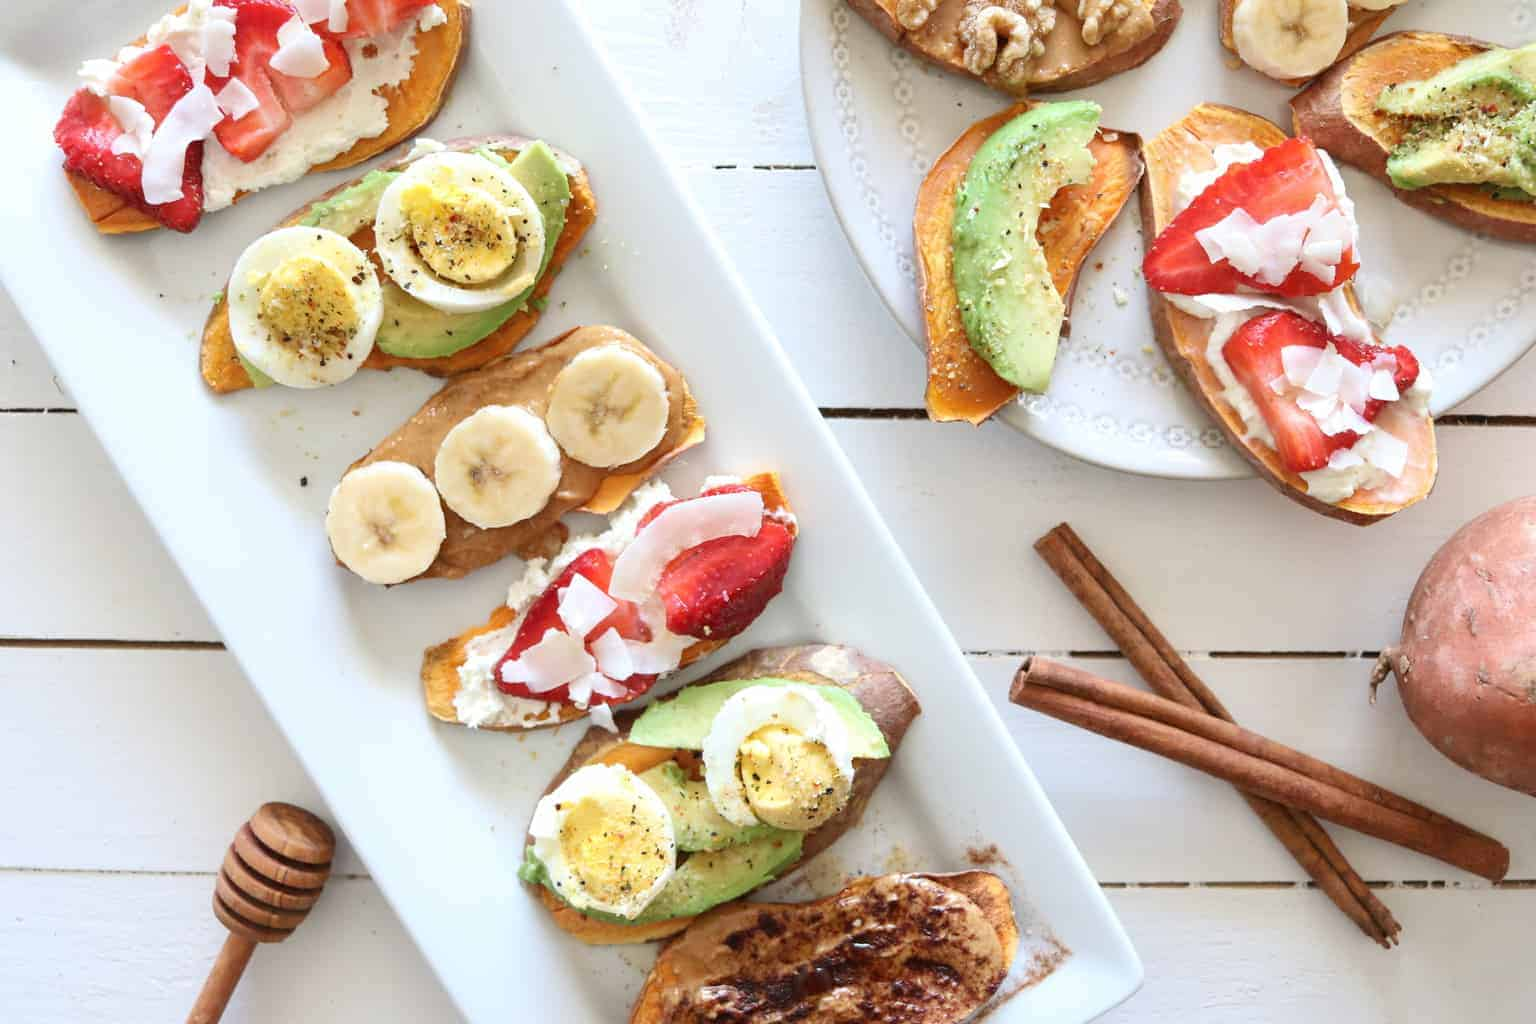 Easy, delicious, and healthy snack ideas for kids and adults. Healthy meals on the go.